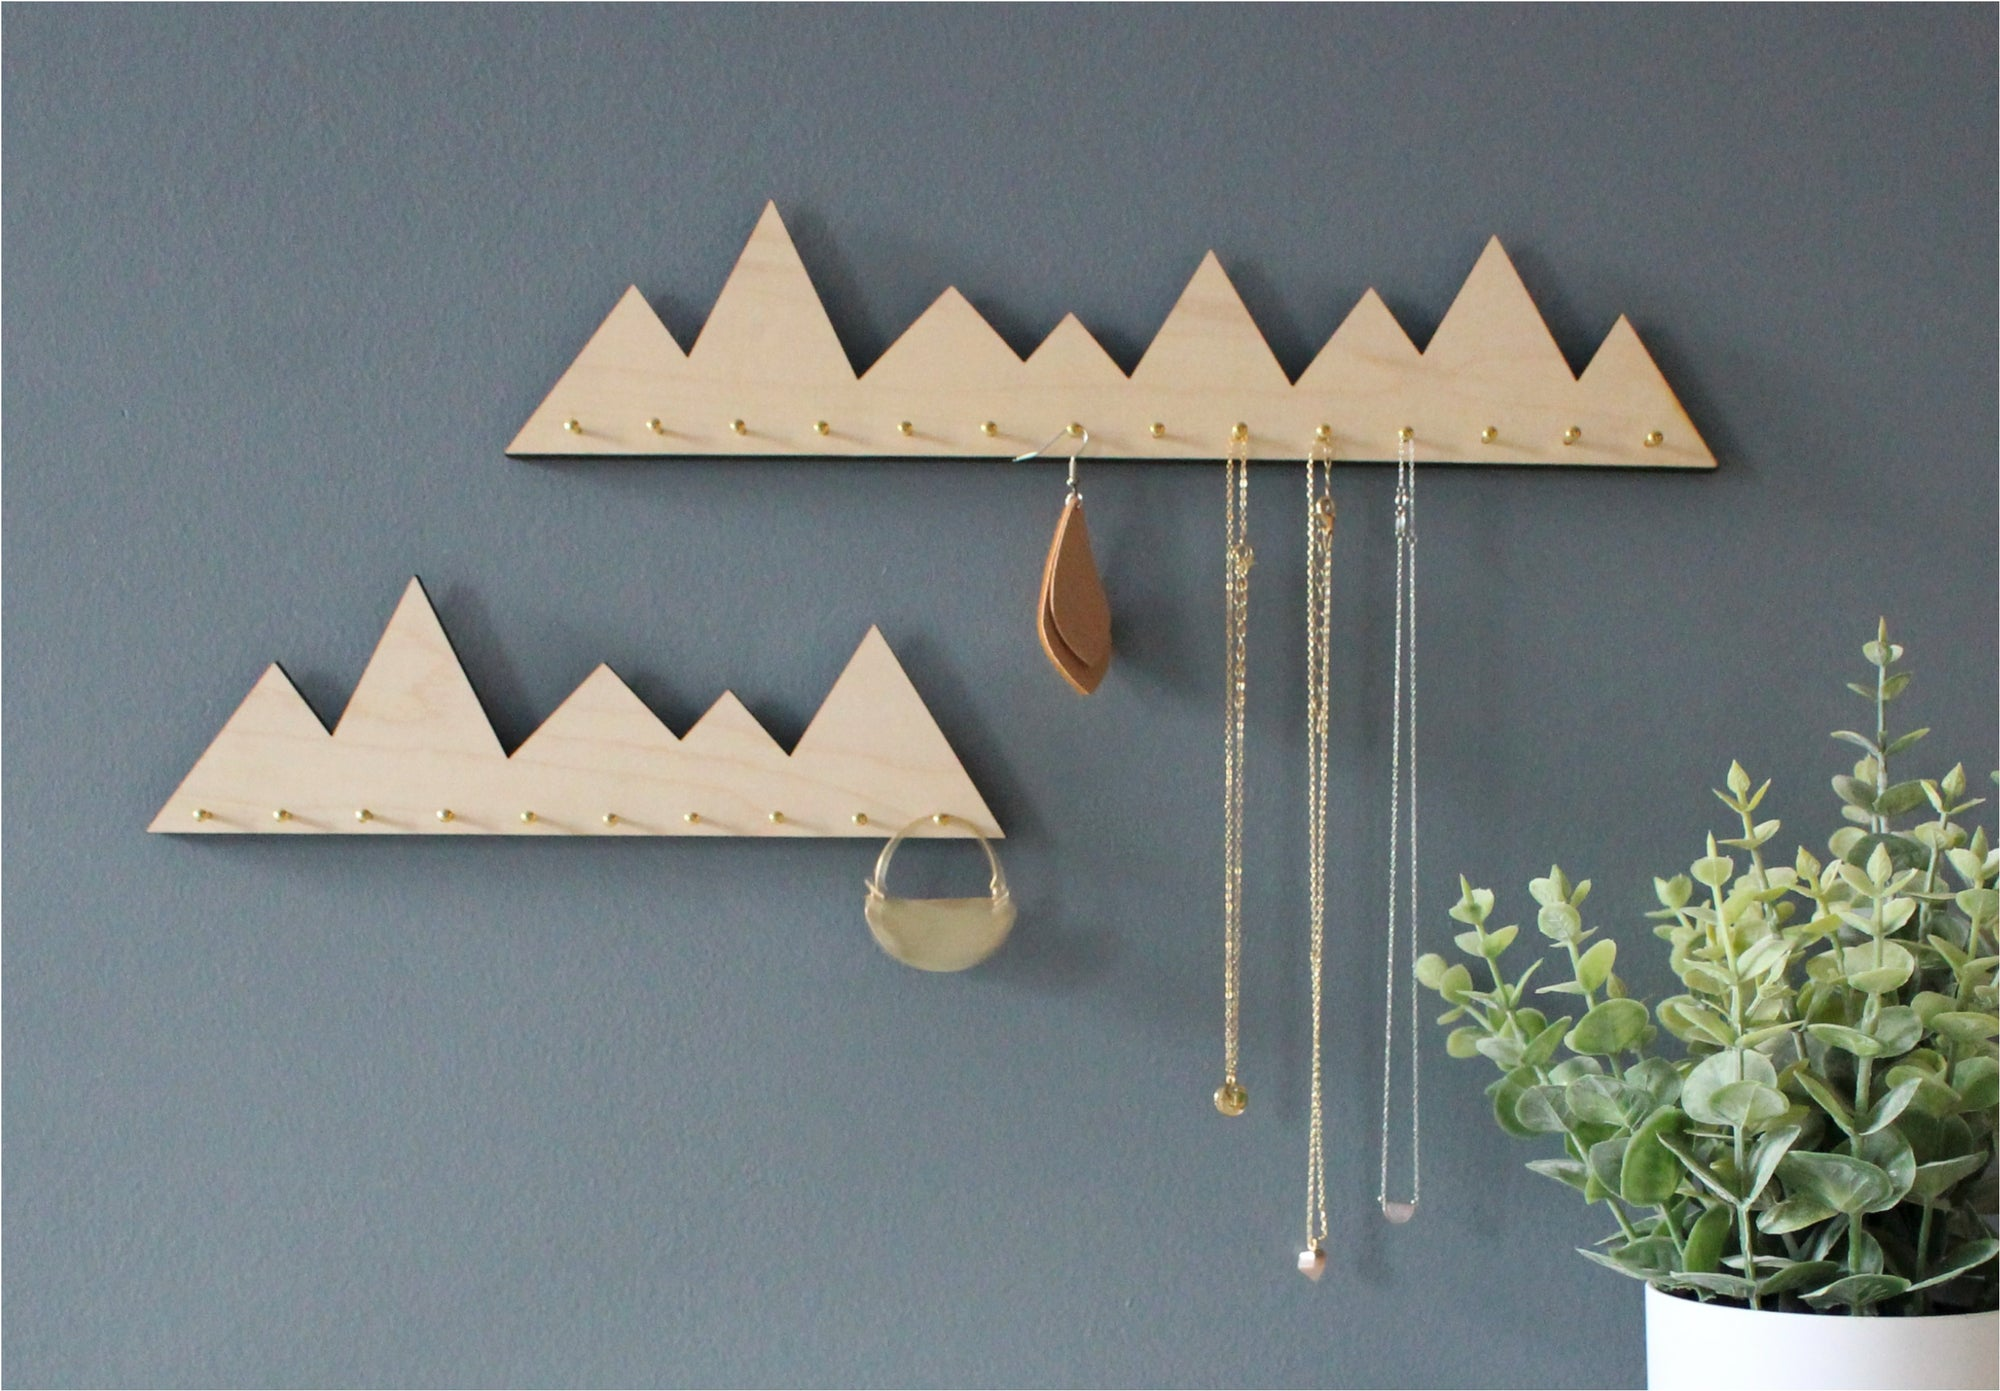 2-Piece Mountain Necklace Organizers